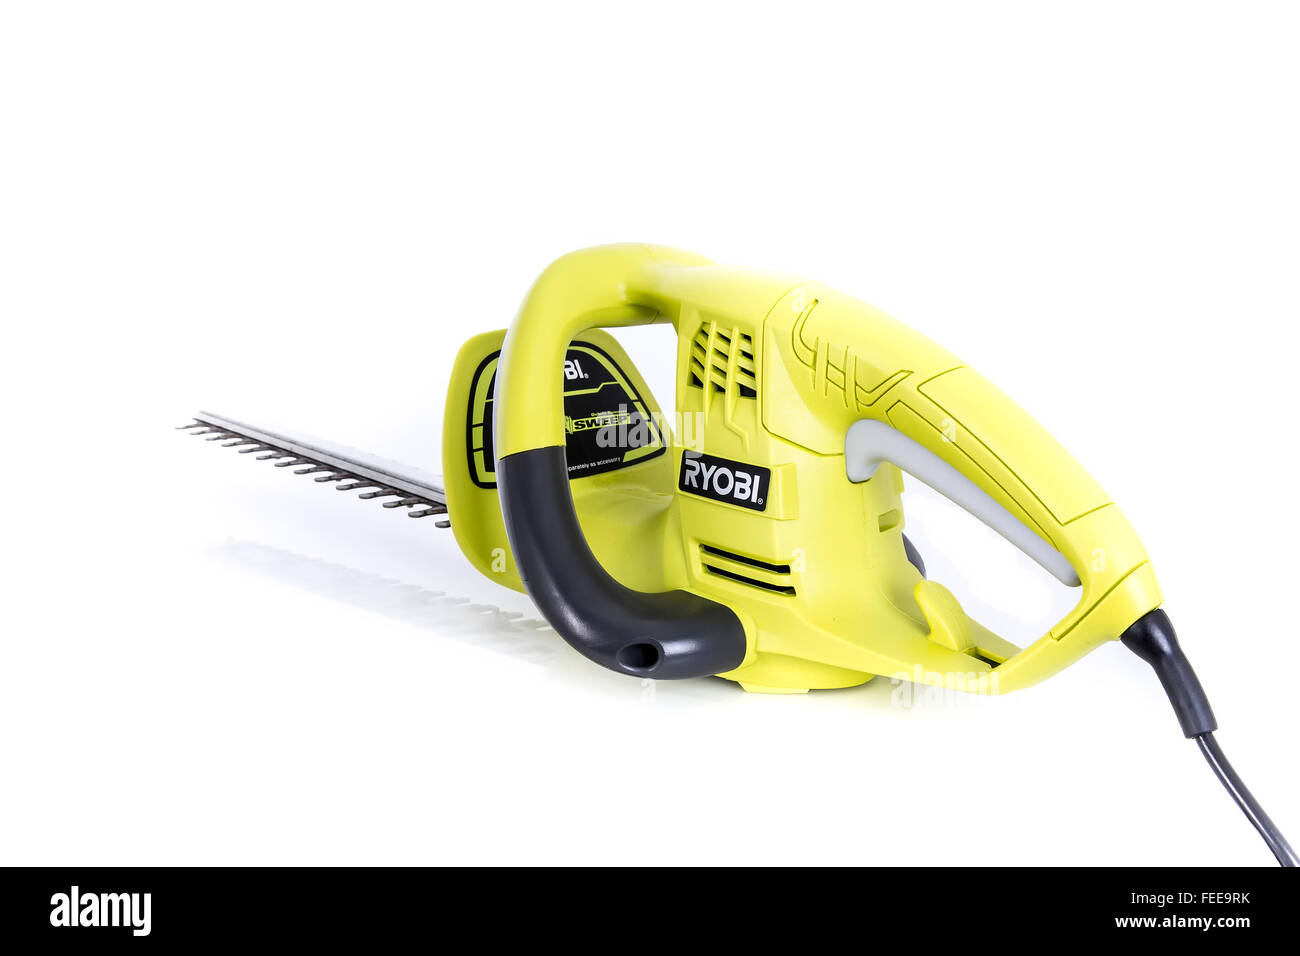 RYOBI Electric Hedge Trimmer on a White Background - Stock Image